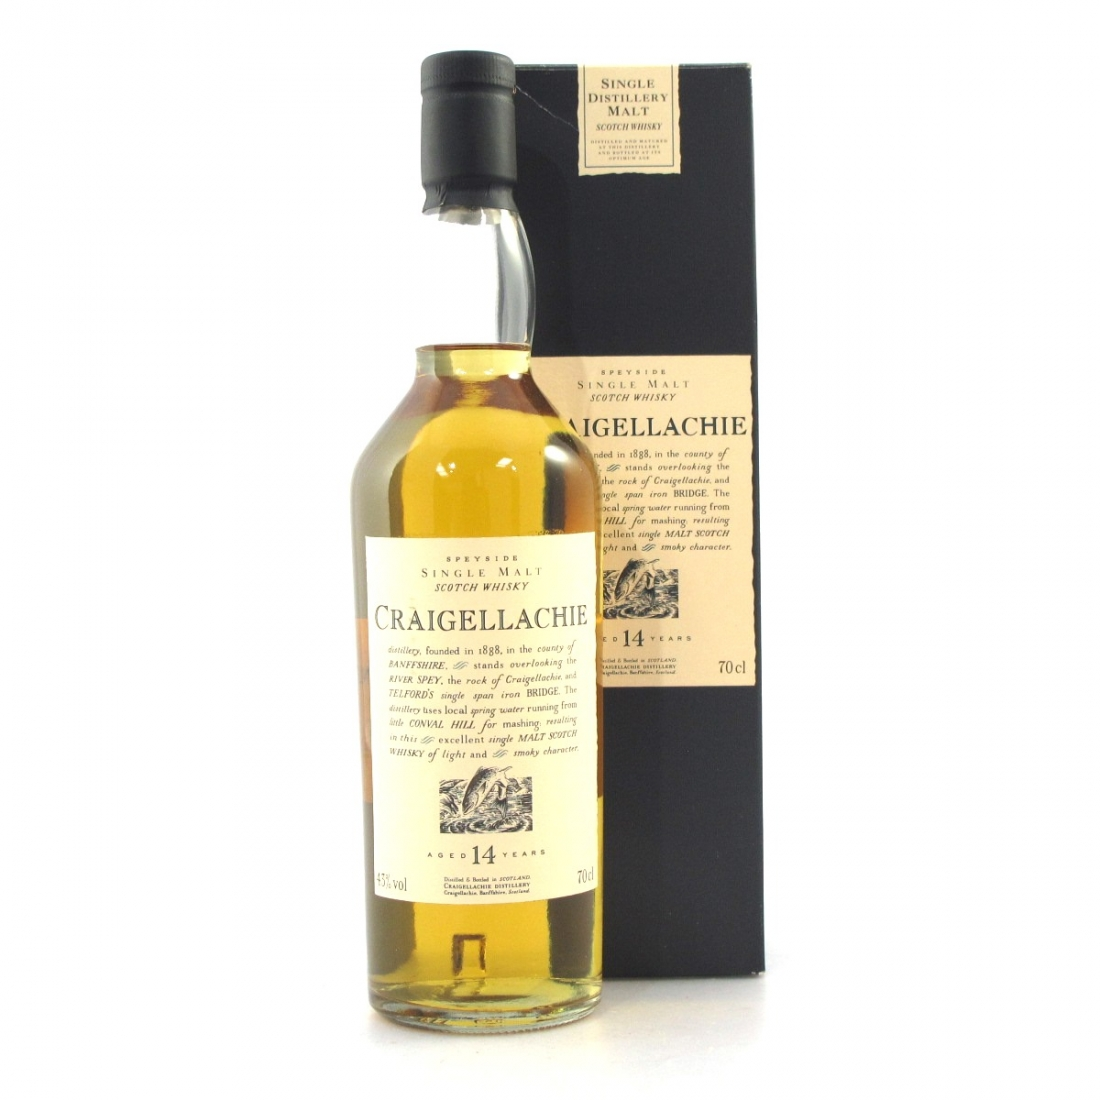 Craigellachie 14 Year Old Flora and Fauna